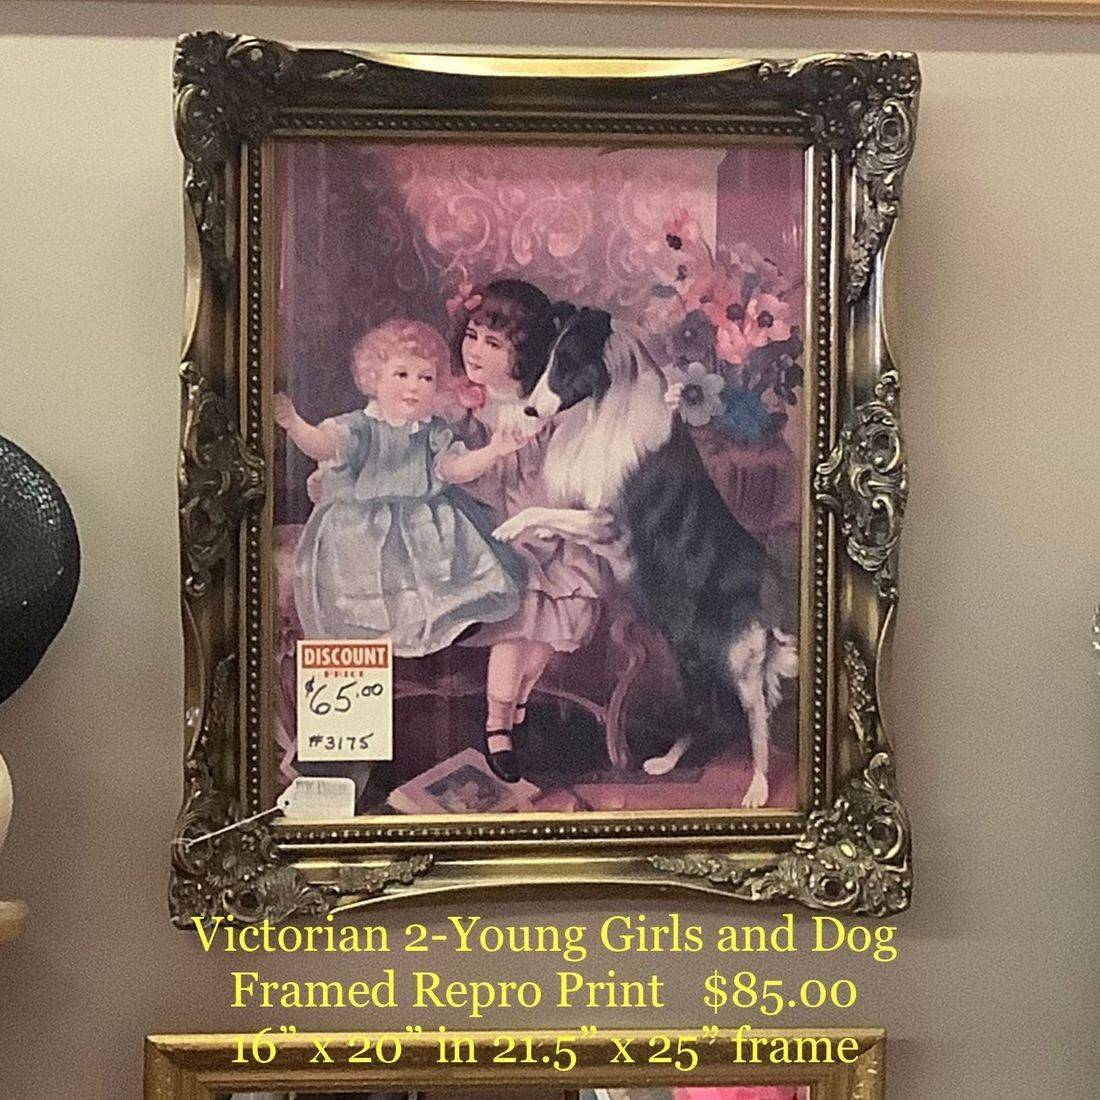 Victorian Repro, 2-Young Girls and Dog Framed Print  $85.00